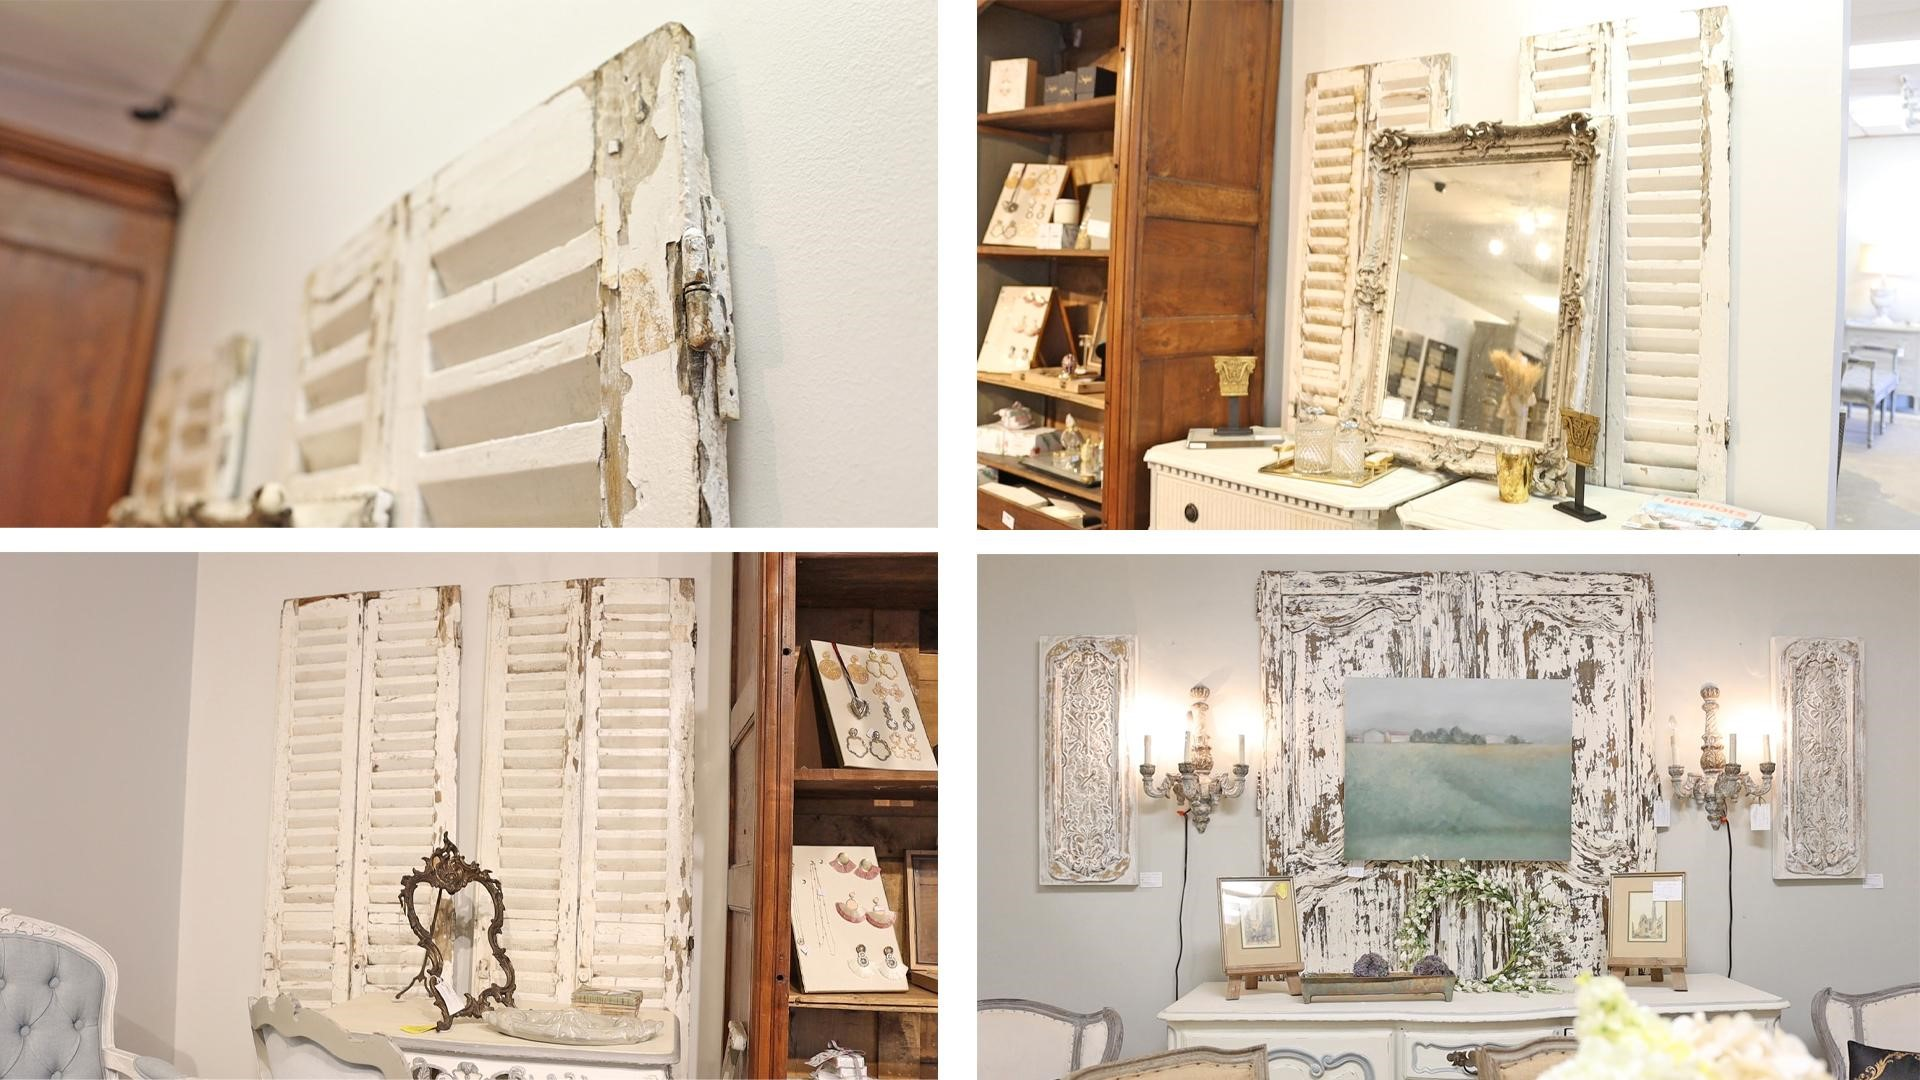 Add texture and interest to your space with distressed wood finishes like mirrors or antique shutters.